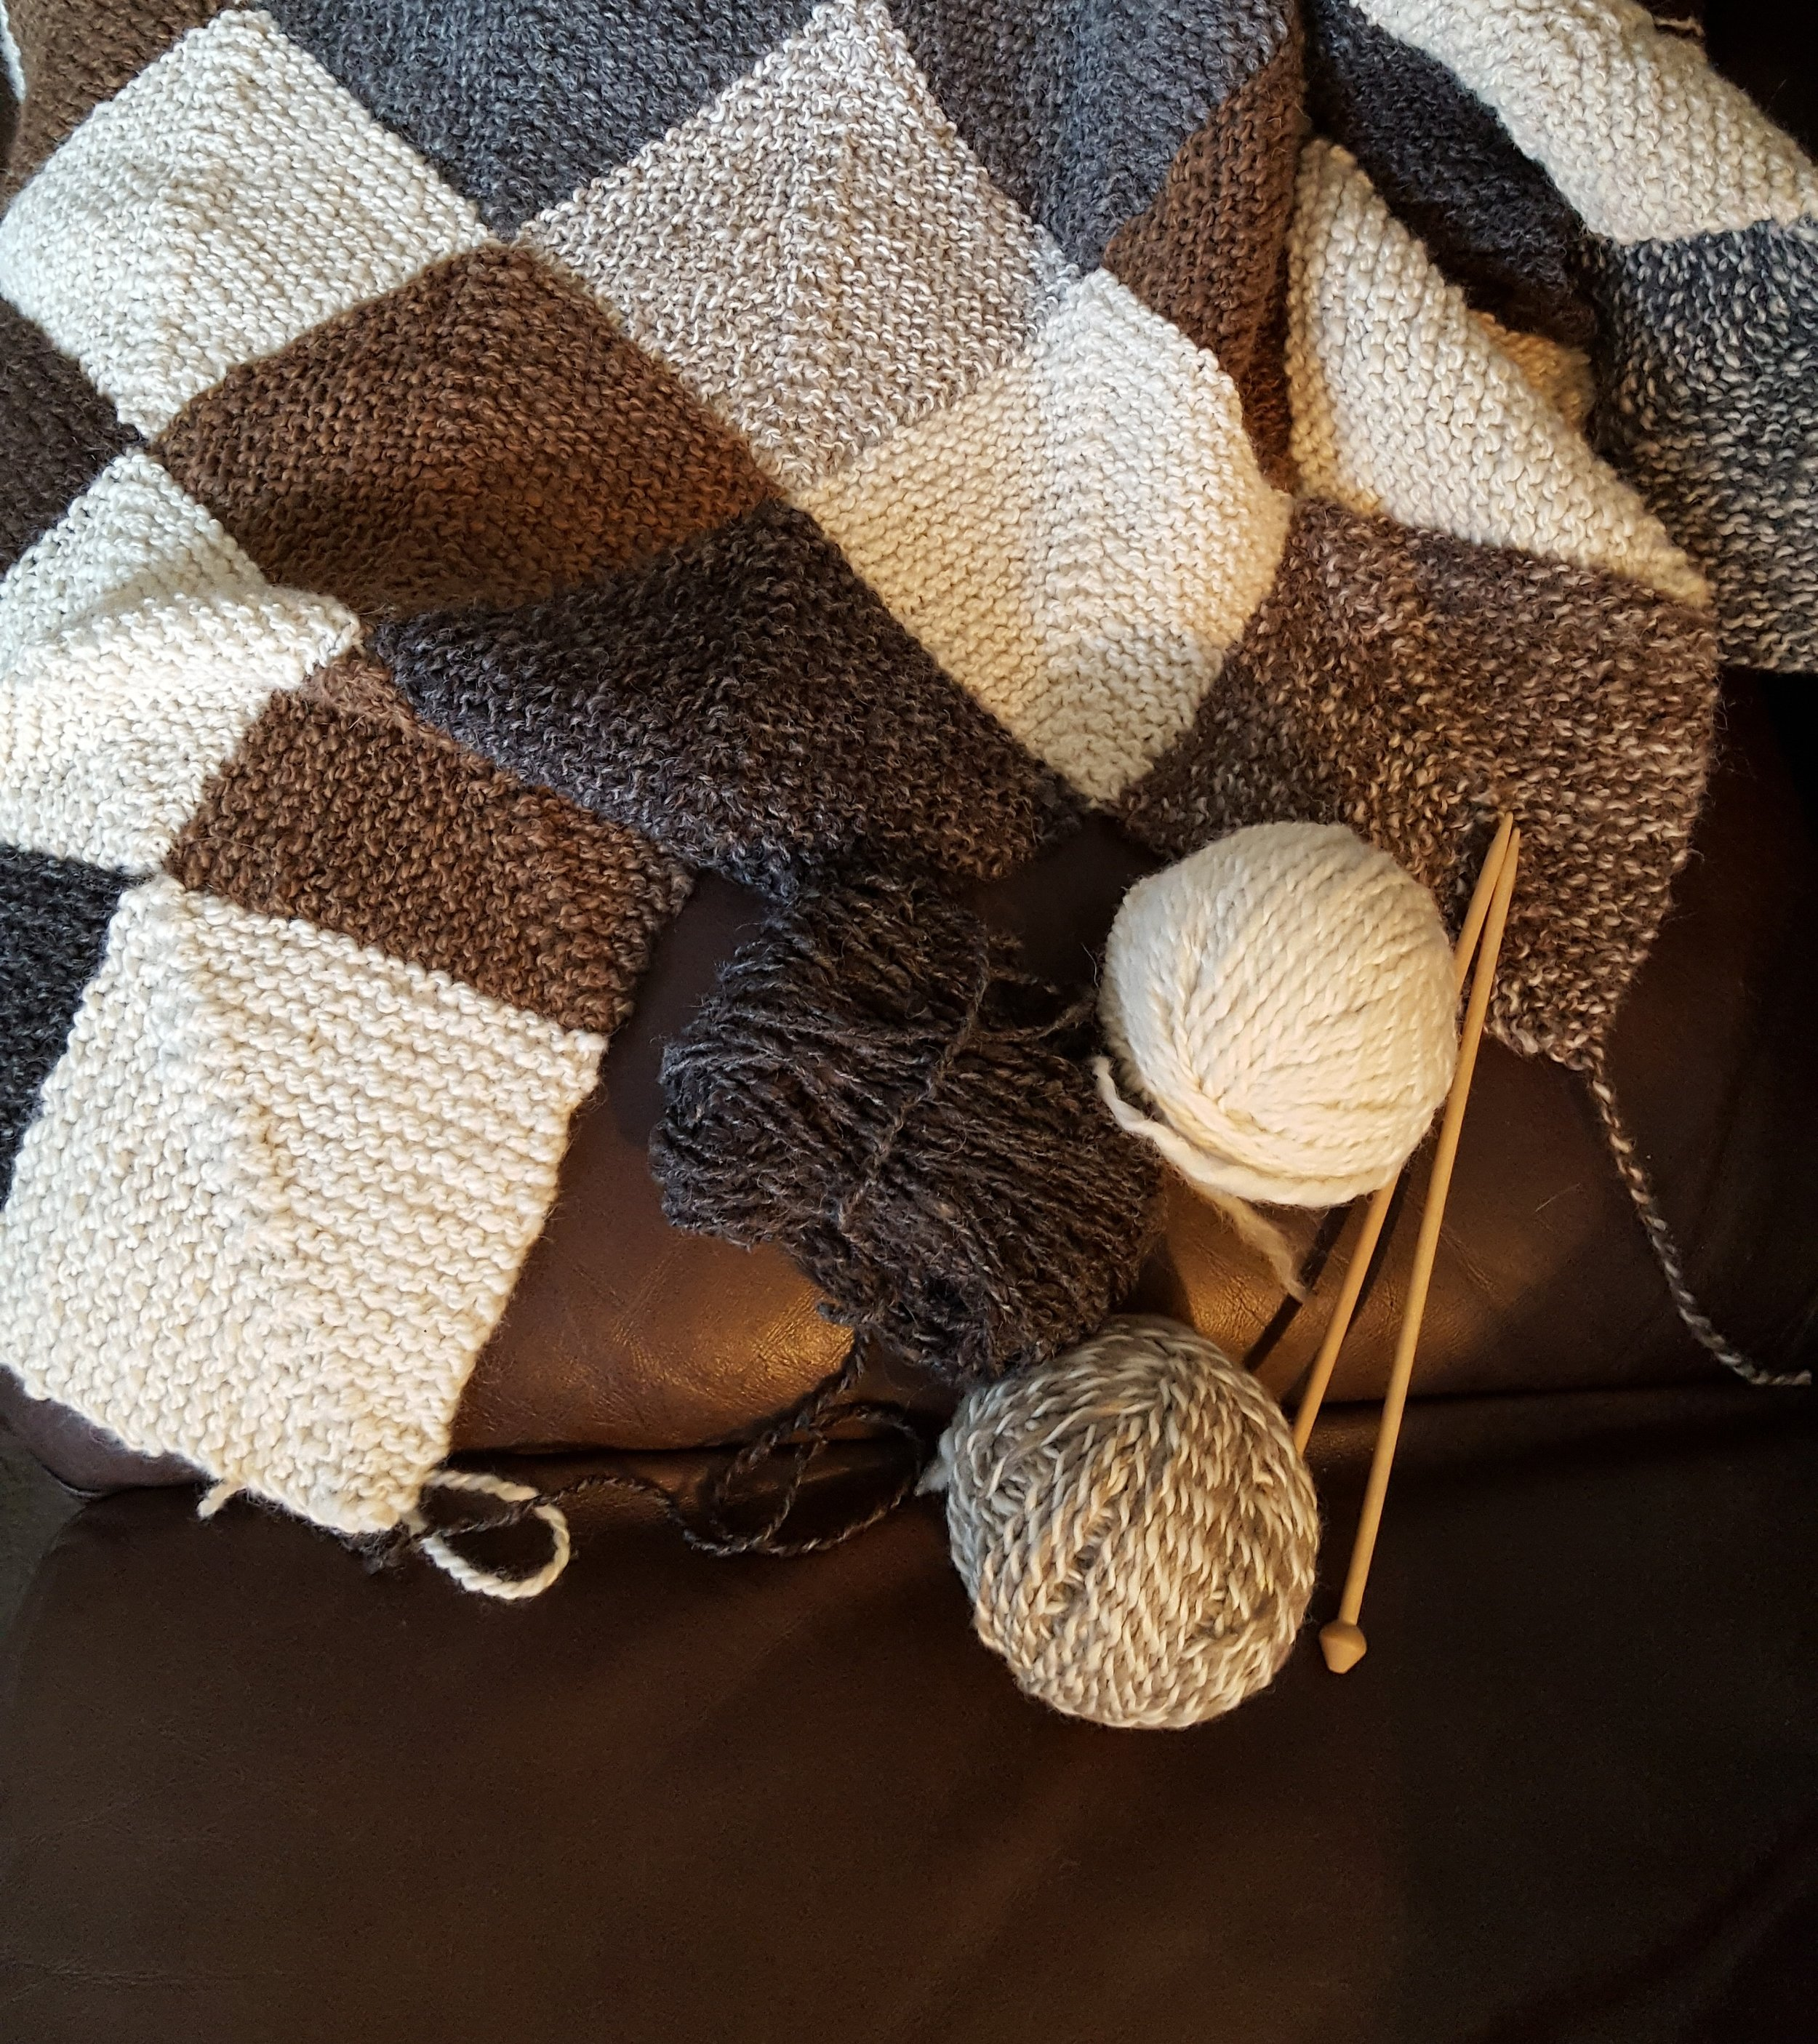 I have made some progress on this long term project...a hand spun alpaca/wool memory blanket...there is satisfaction in both quick knits and this kind of a project that takes longer to complete...what is your favorite?